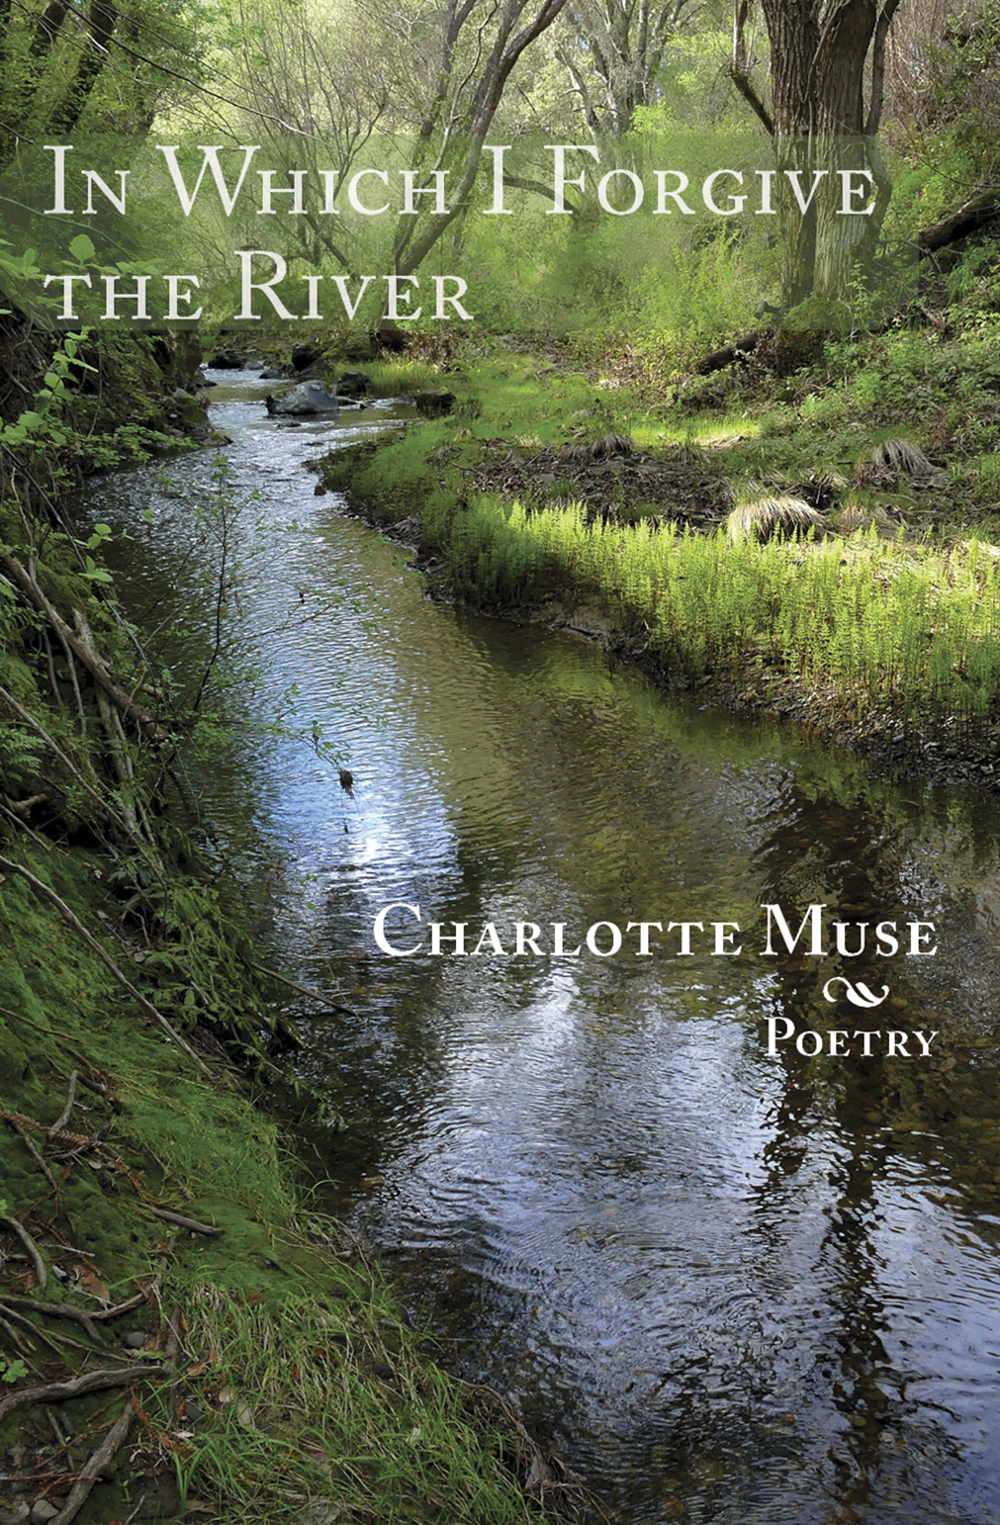 In Which I Forgive the River